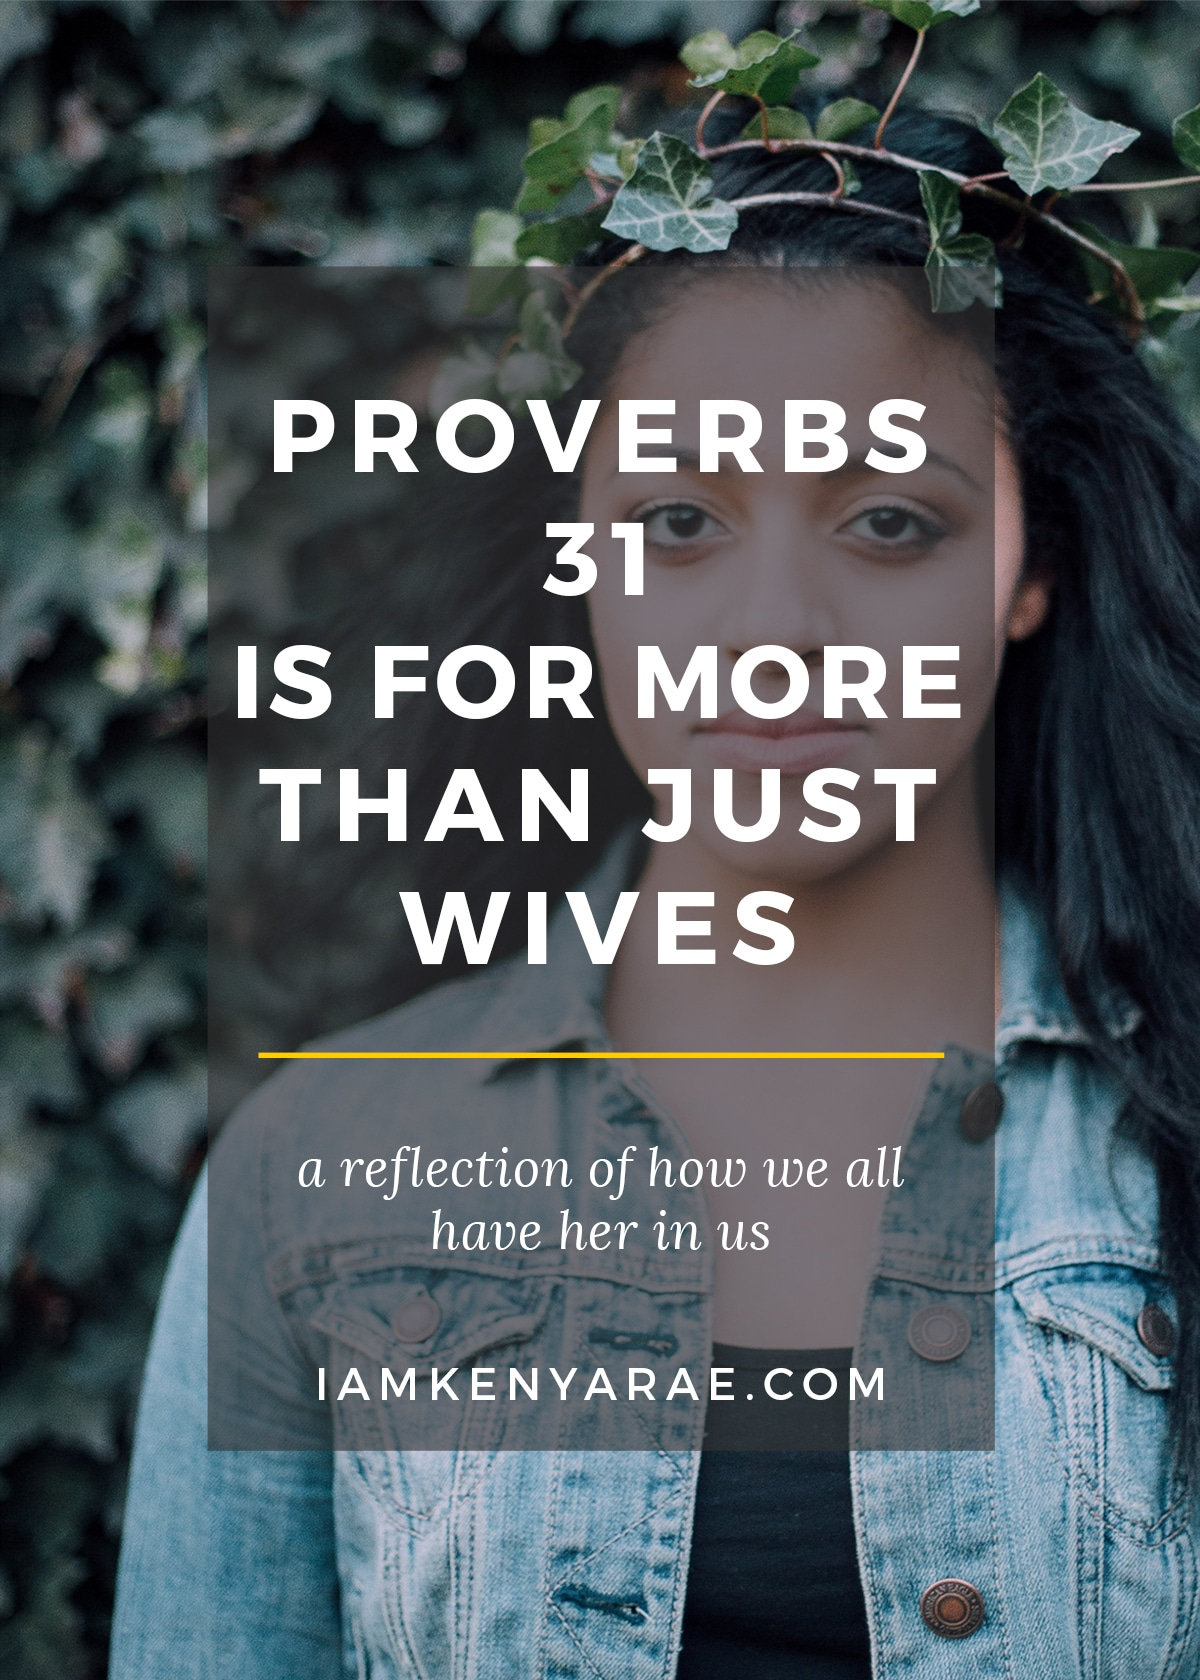 Proverbs 31 is For More Than Just Wives